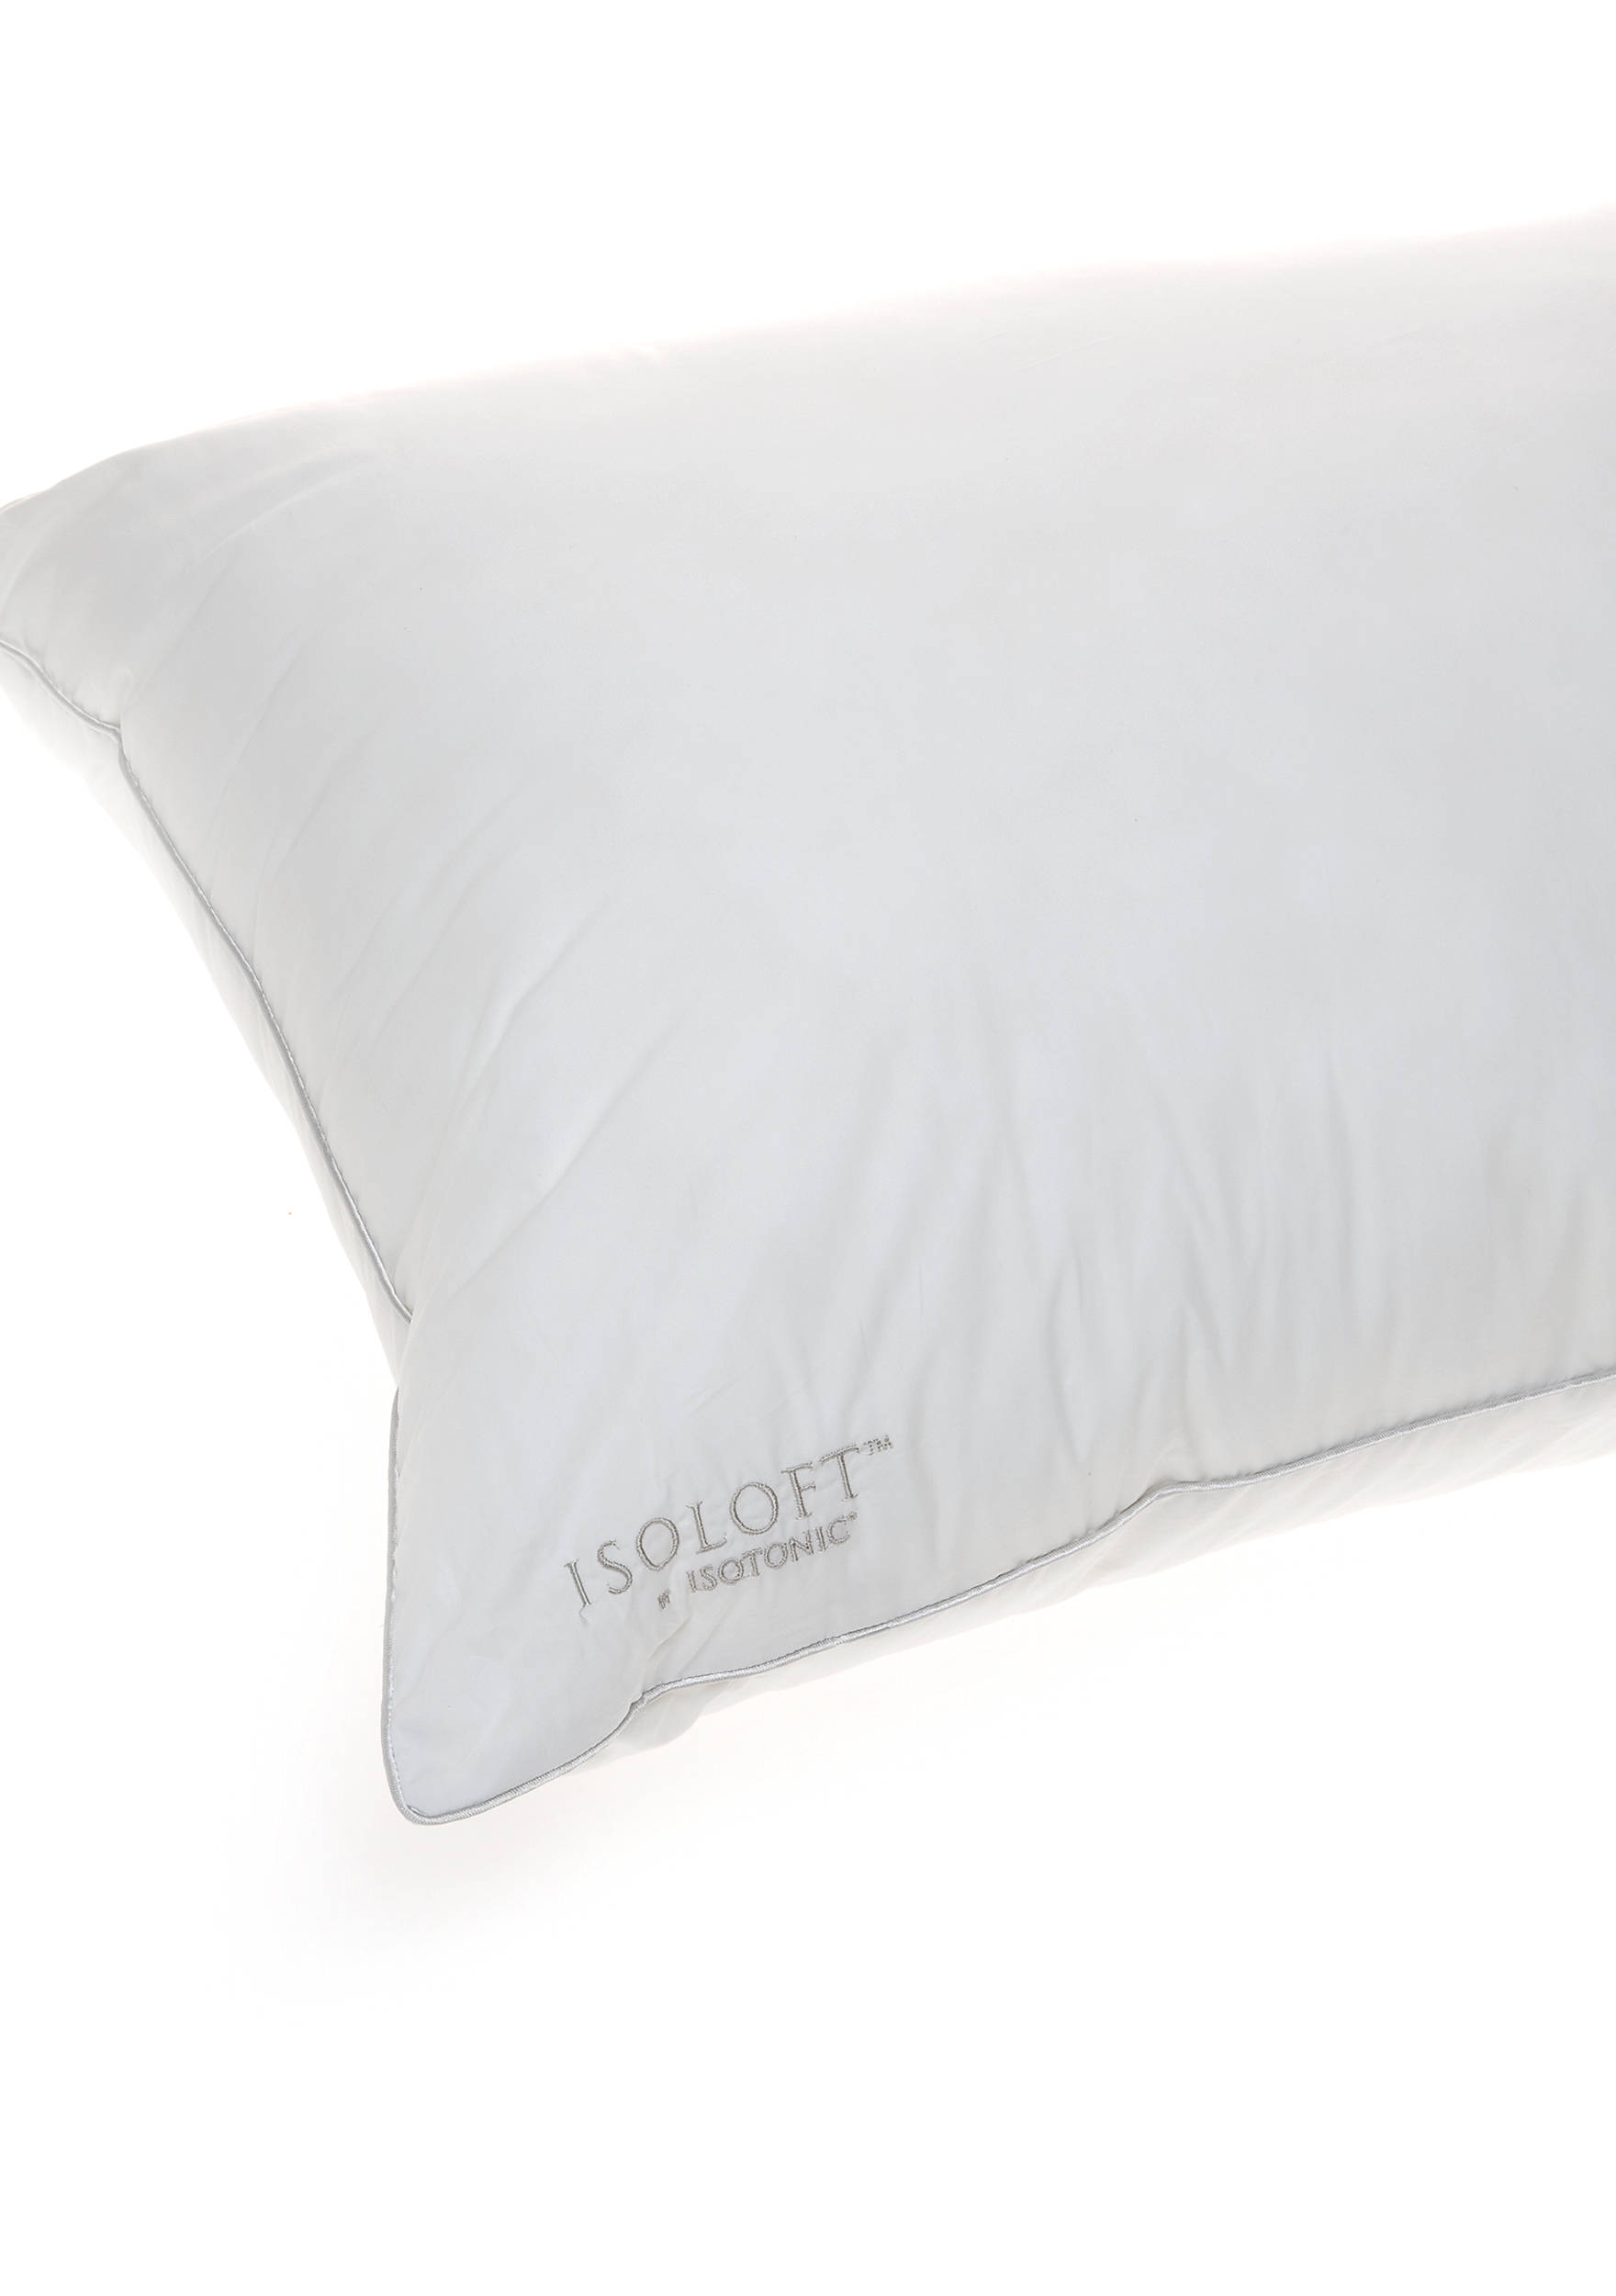 White bed pillows - Isotonic Isoloft Memory Fiber Bed Pillow 9200182isoloftplwsq Images